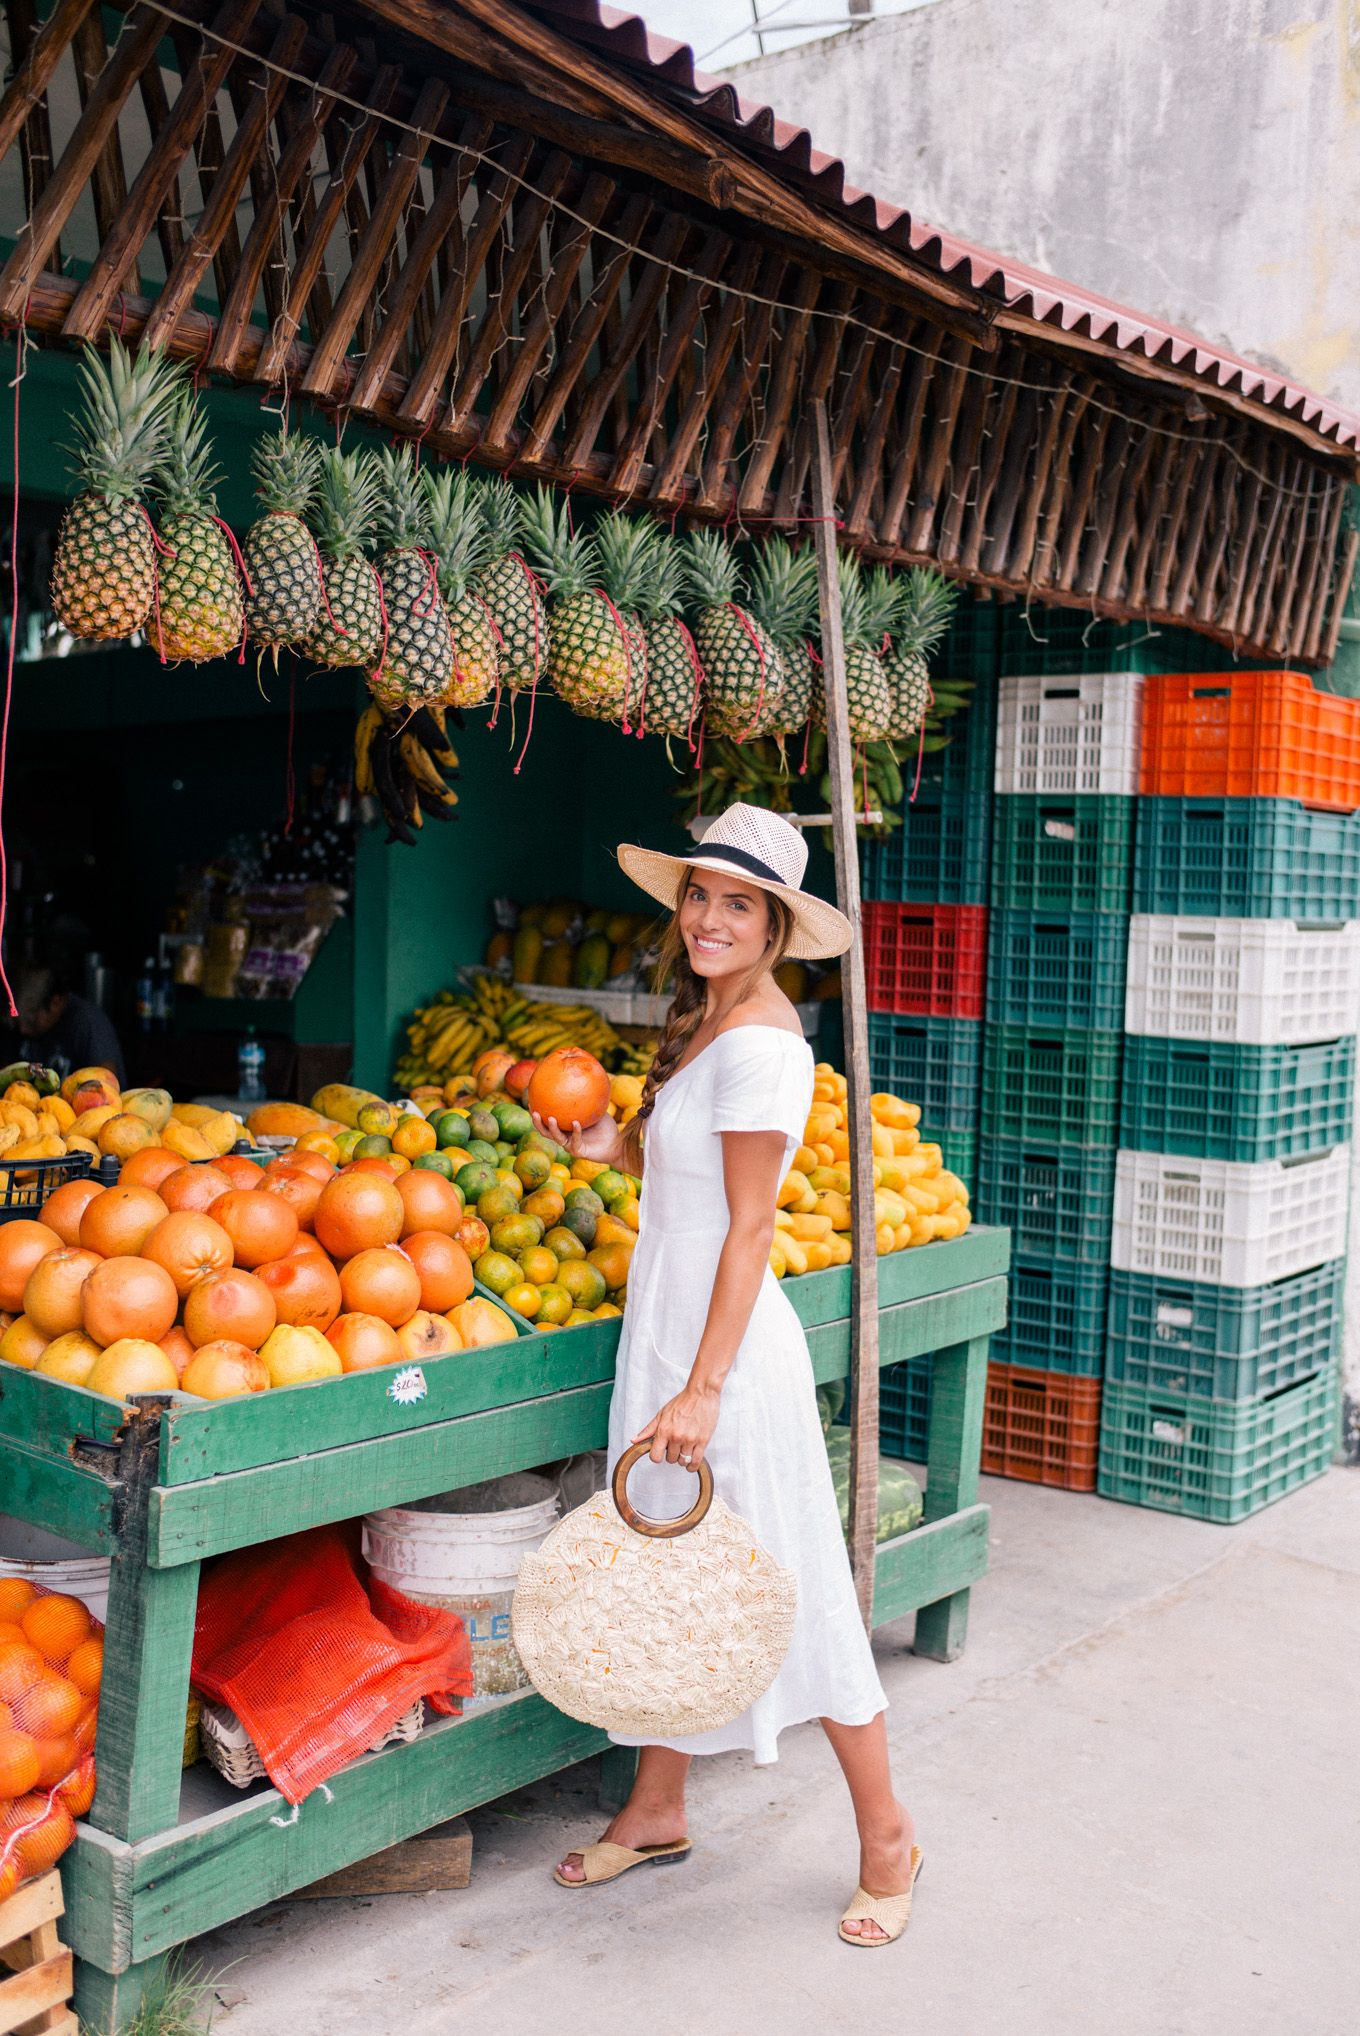 ff4e5c99b5 Gal Meets Glam Shopping in Tulum - Reformation dress